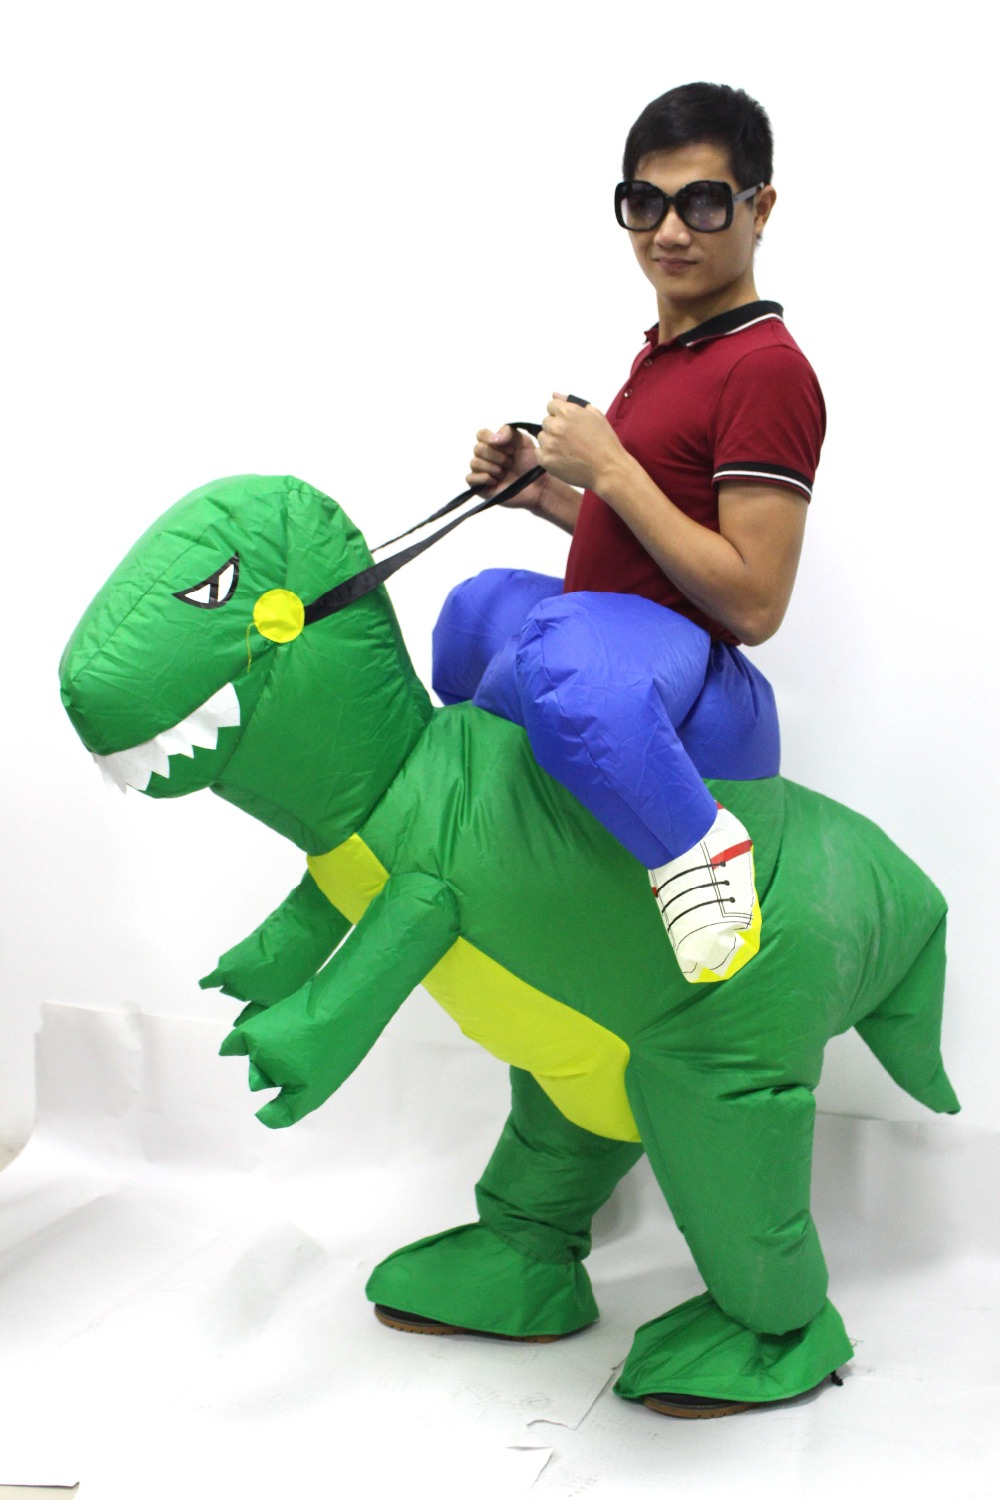 Adult Inflatable Dinosaur Costume Dress Suit Party Kid Halloween Christmas Inflatable Costume Xmas Gift One Size Fit All Style